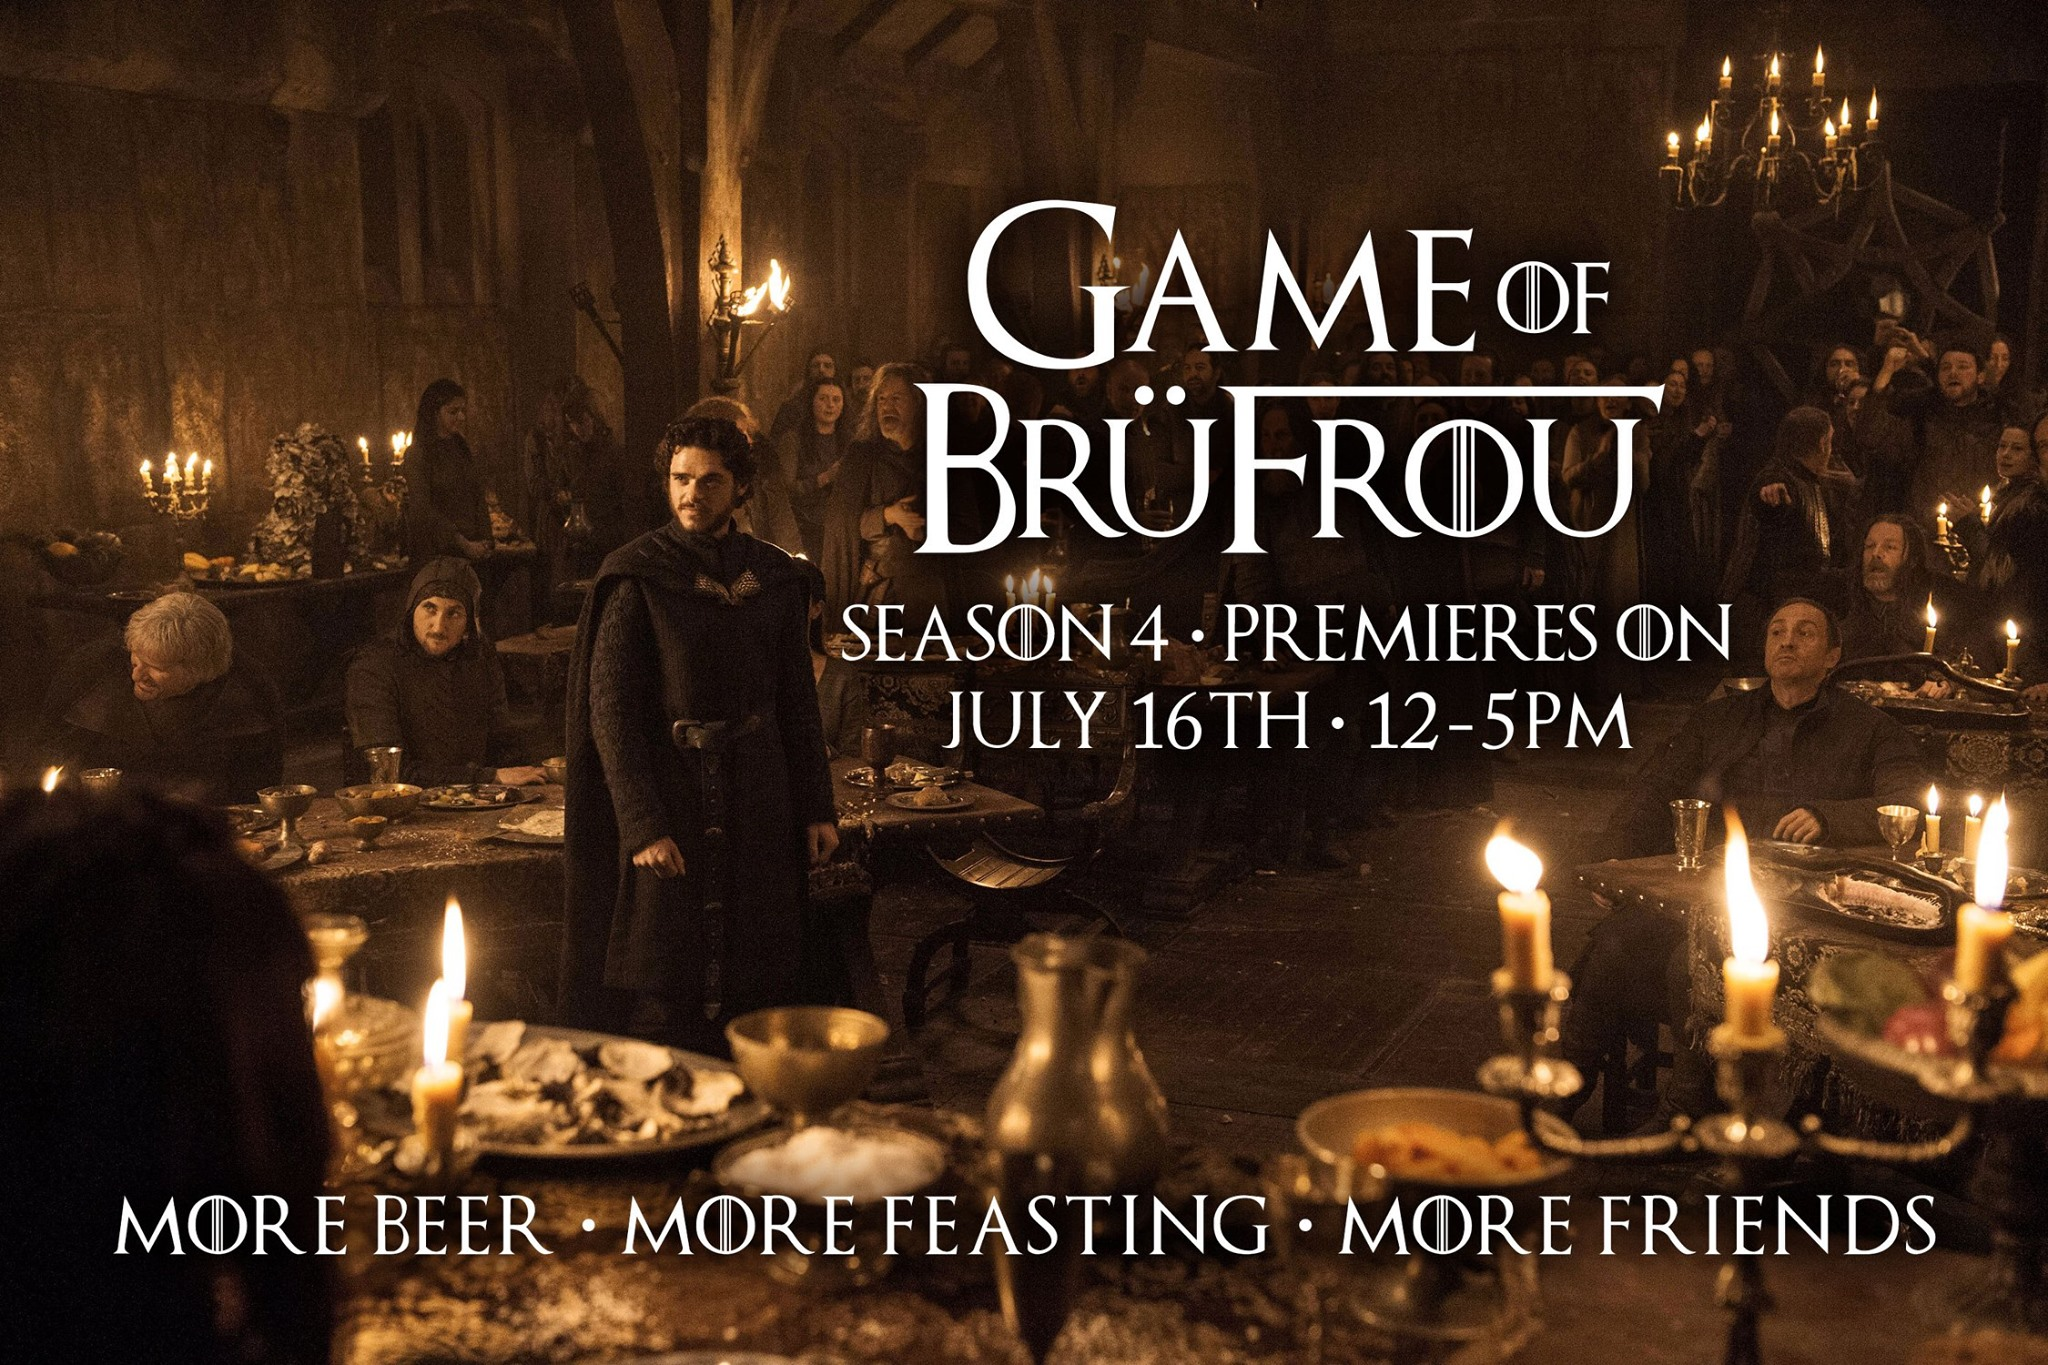 "Next Sunday, July 16th from 12-5pm, dance & sing to joyous live music, feast like kings & queens (but with more friends around ;-)). And of course be home in time for the Season 7 premiere of Game of Thrones at 7pm. Get your BrüFrou tickets from $40 for the best ""GoT"" pre-party in Denver at www.BruFrou.com"